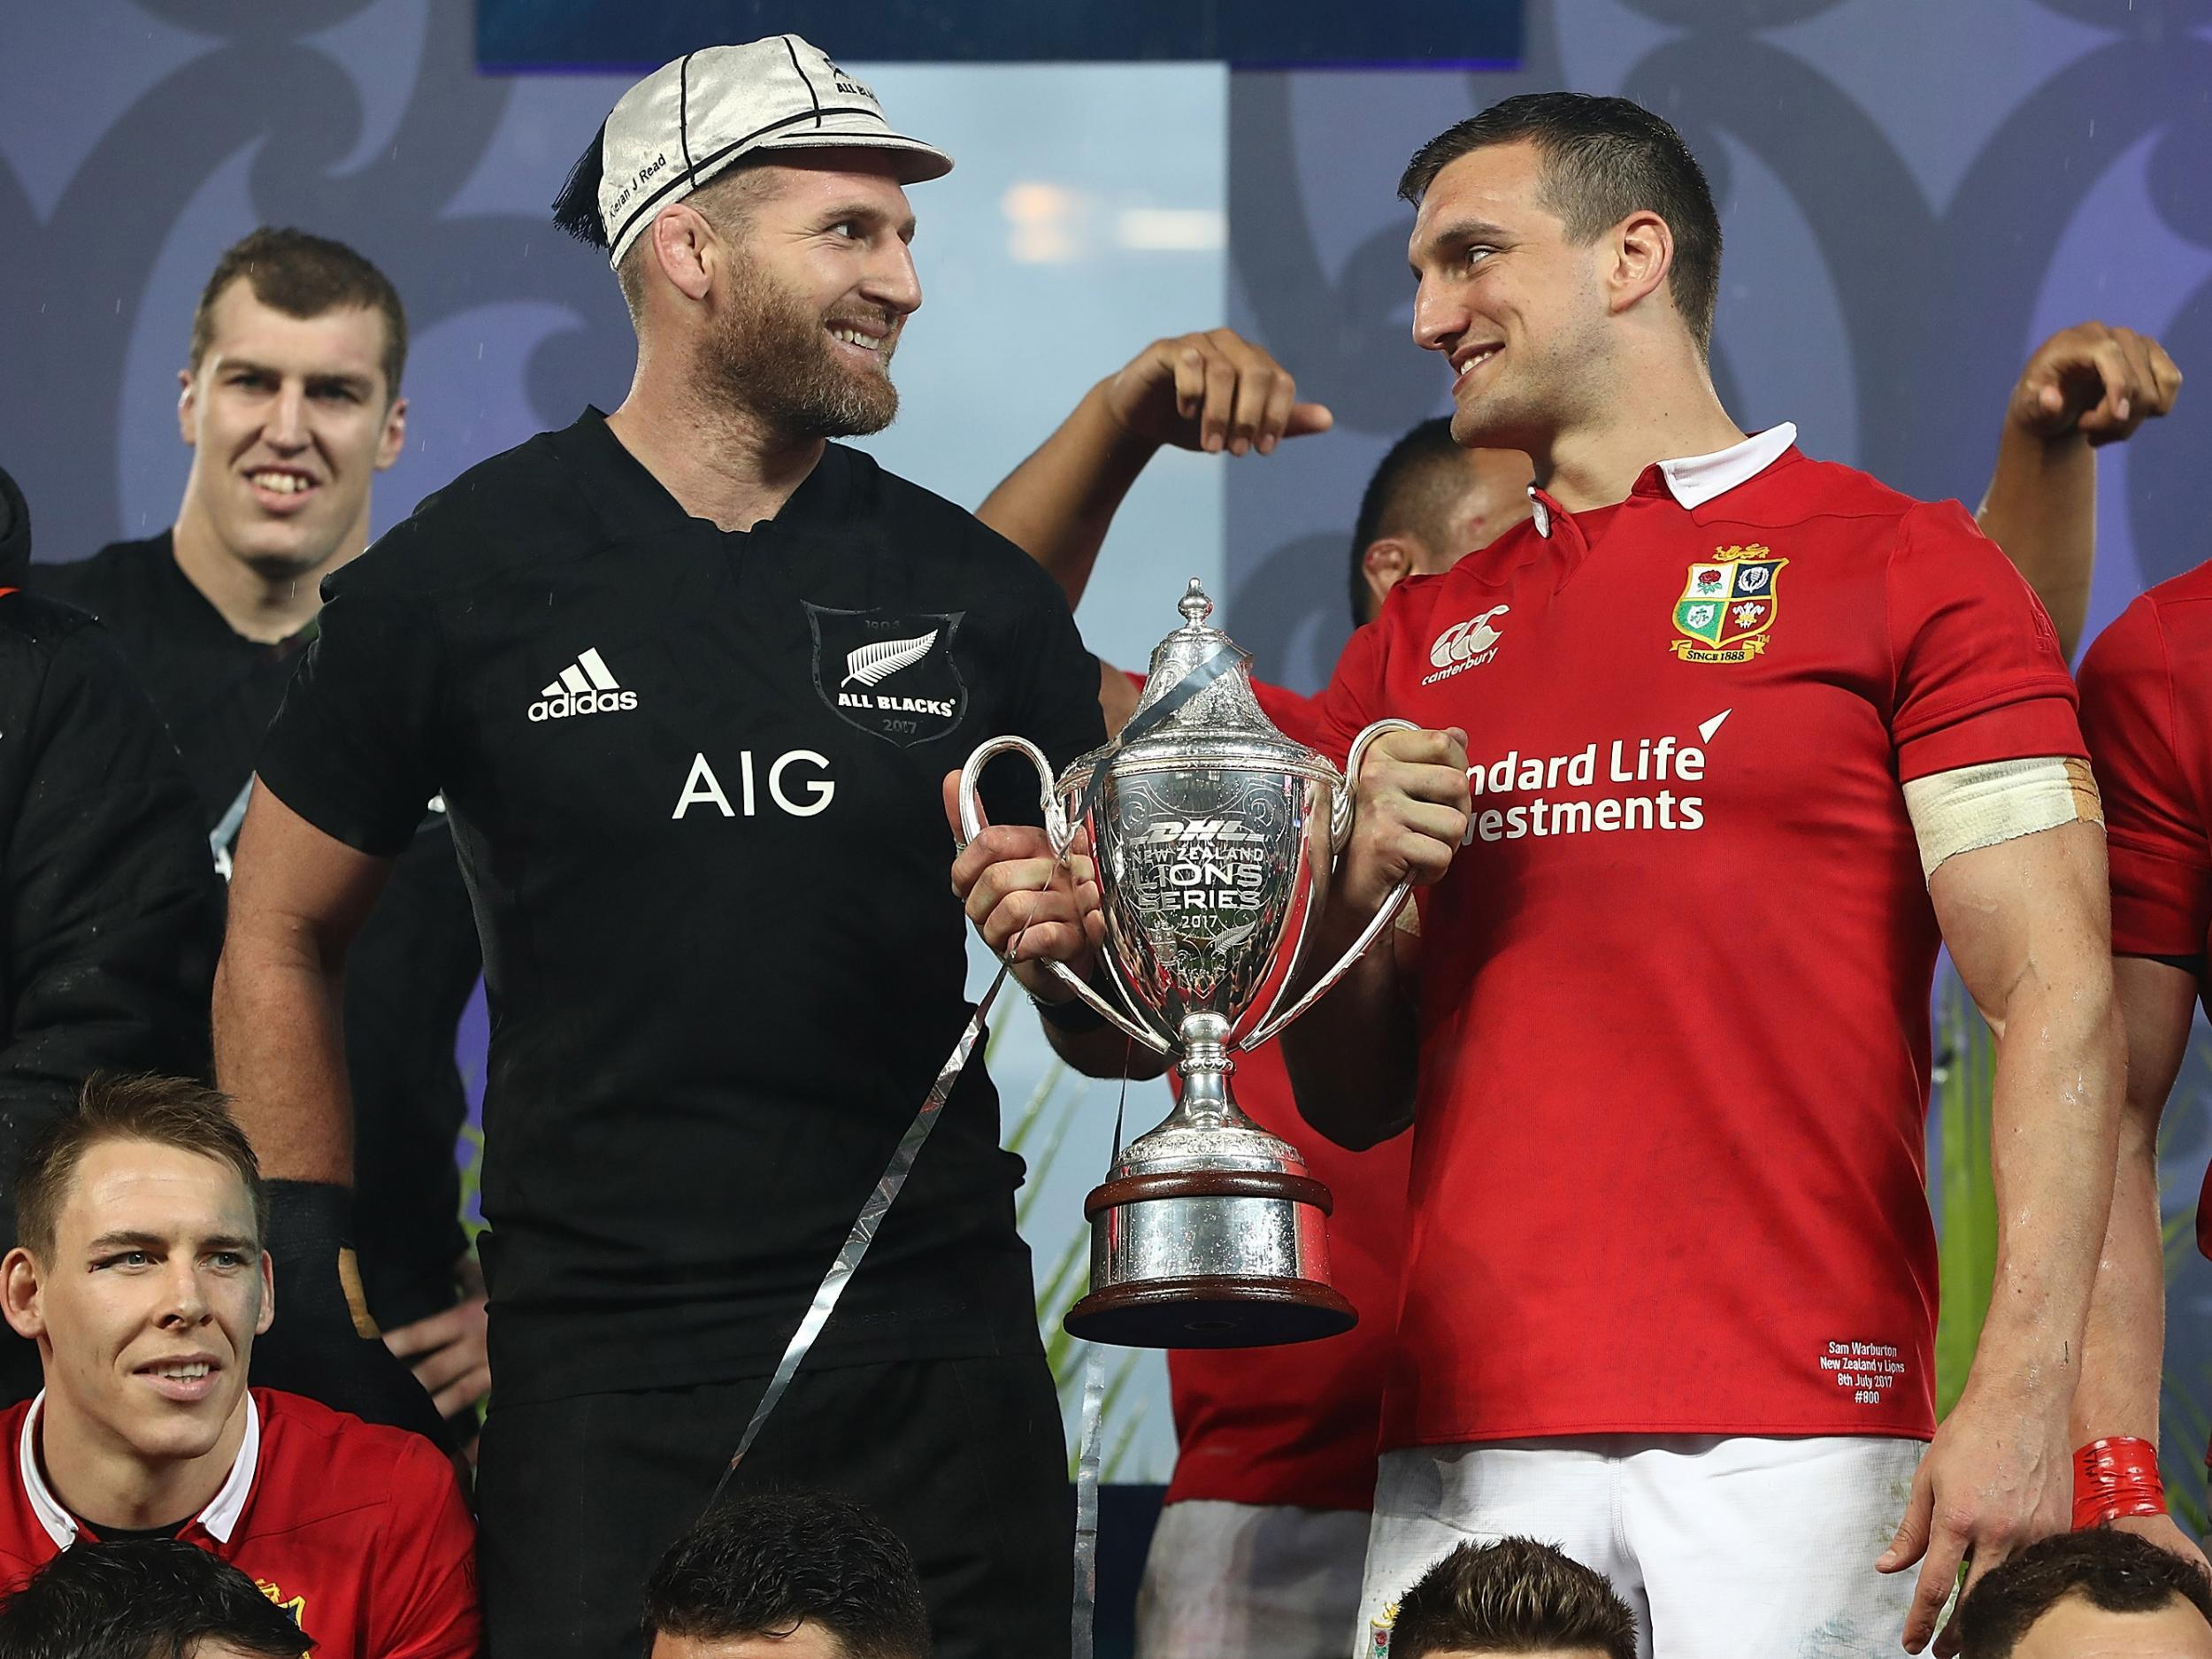 British and Irish Lions targeting history after announcing 2021 tour of South Africa schedule